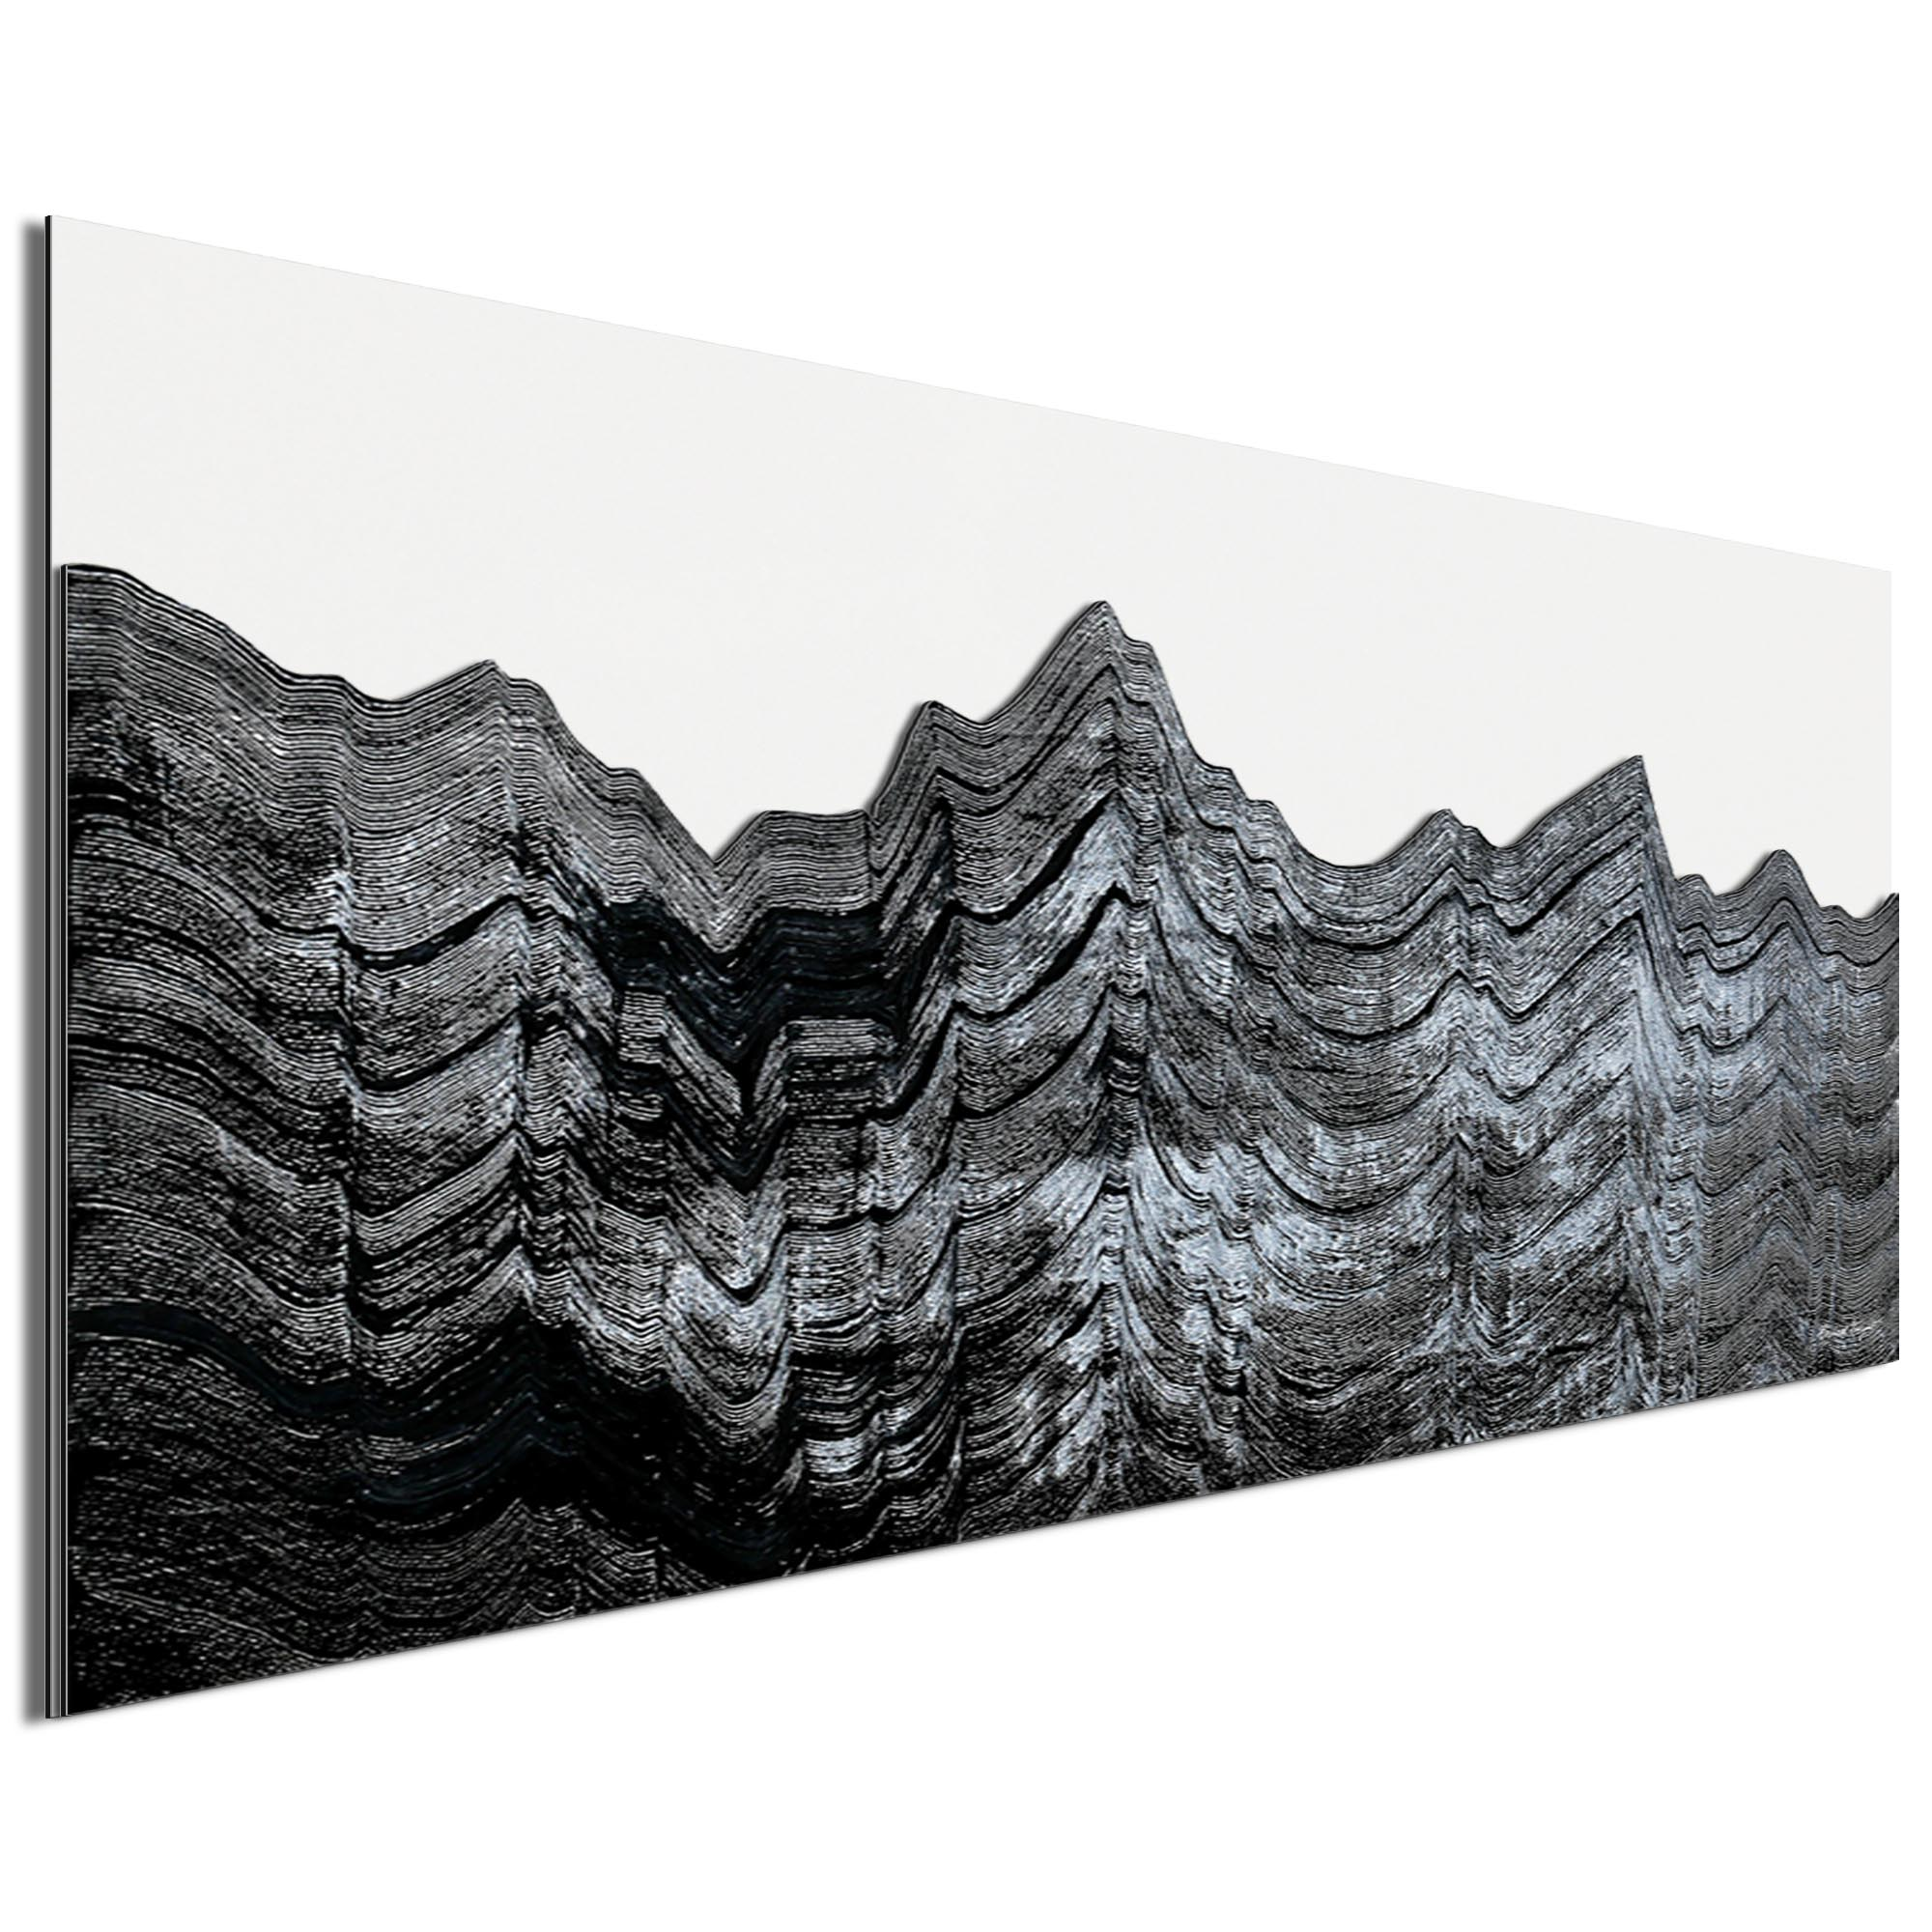 Slate Horizon by Richard Knight - Ltd. Ed. Minimalist Abstract Landscape Art - Image 2